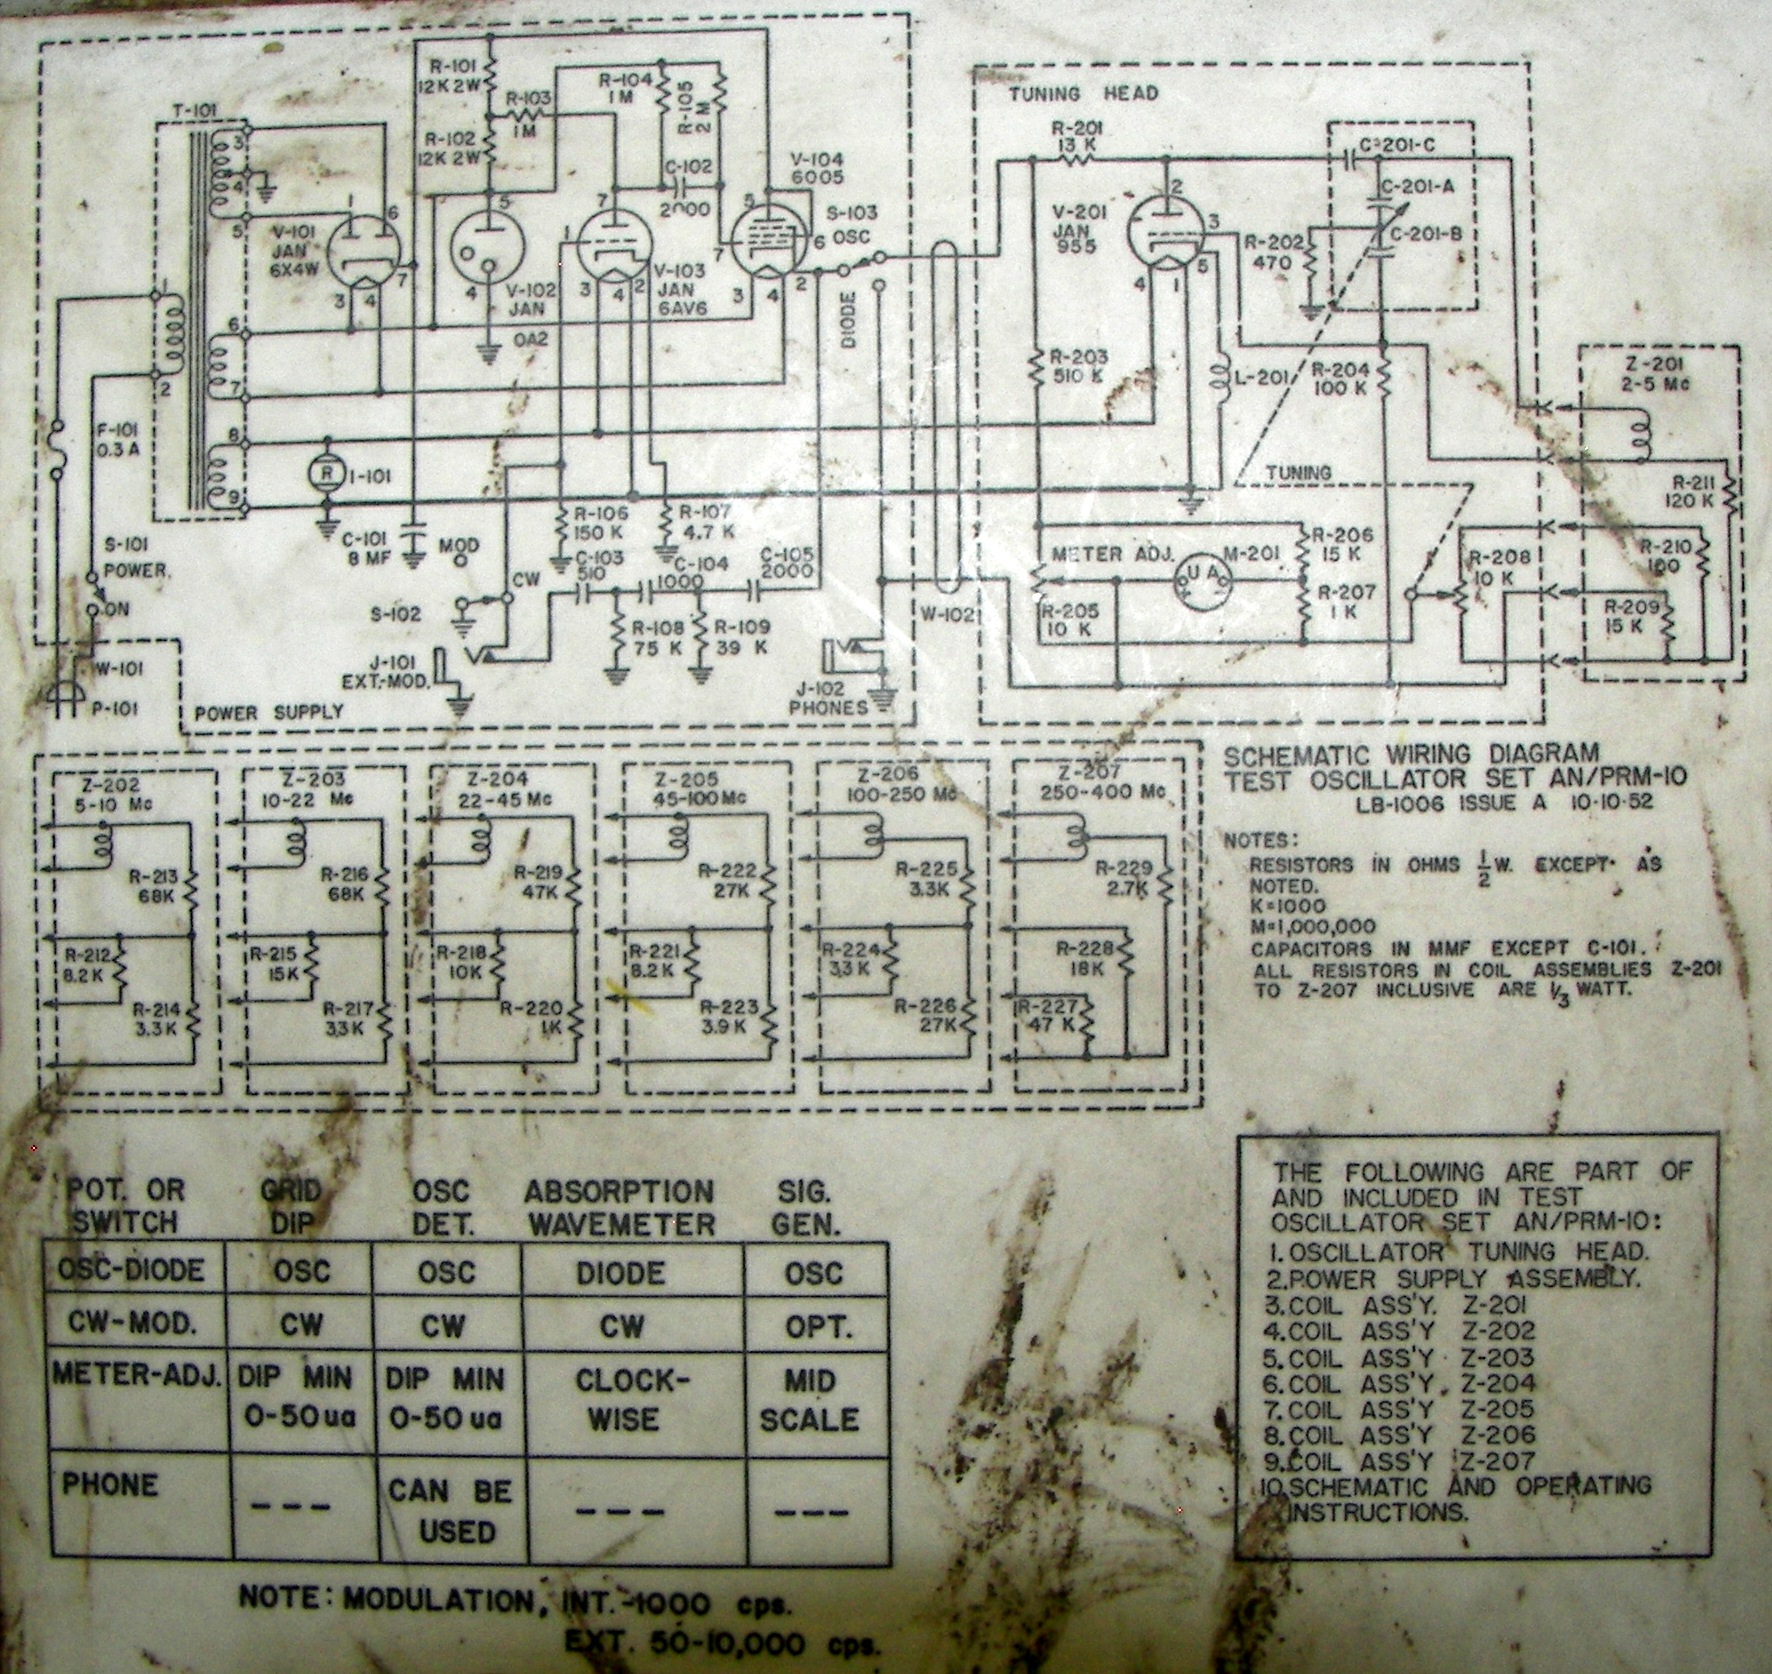 hight resolution of bullhorn loudhailer manual and schematic an prm 10 test